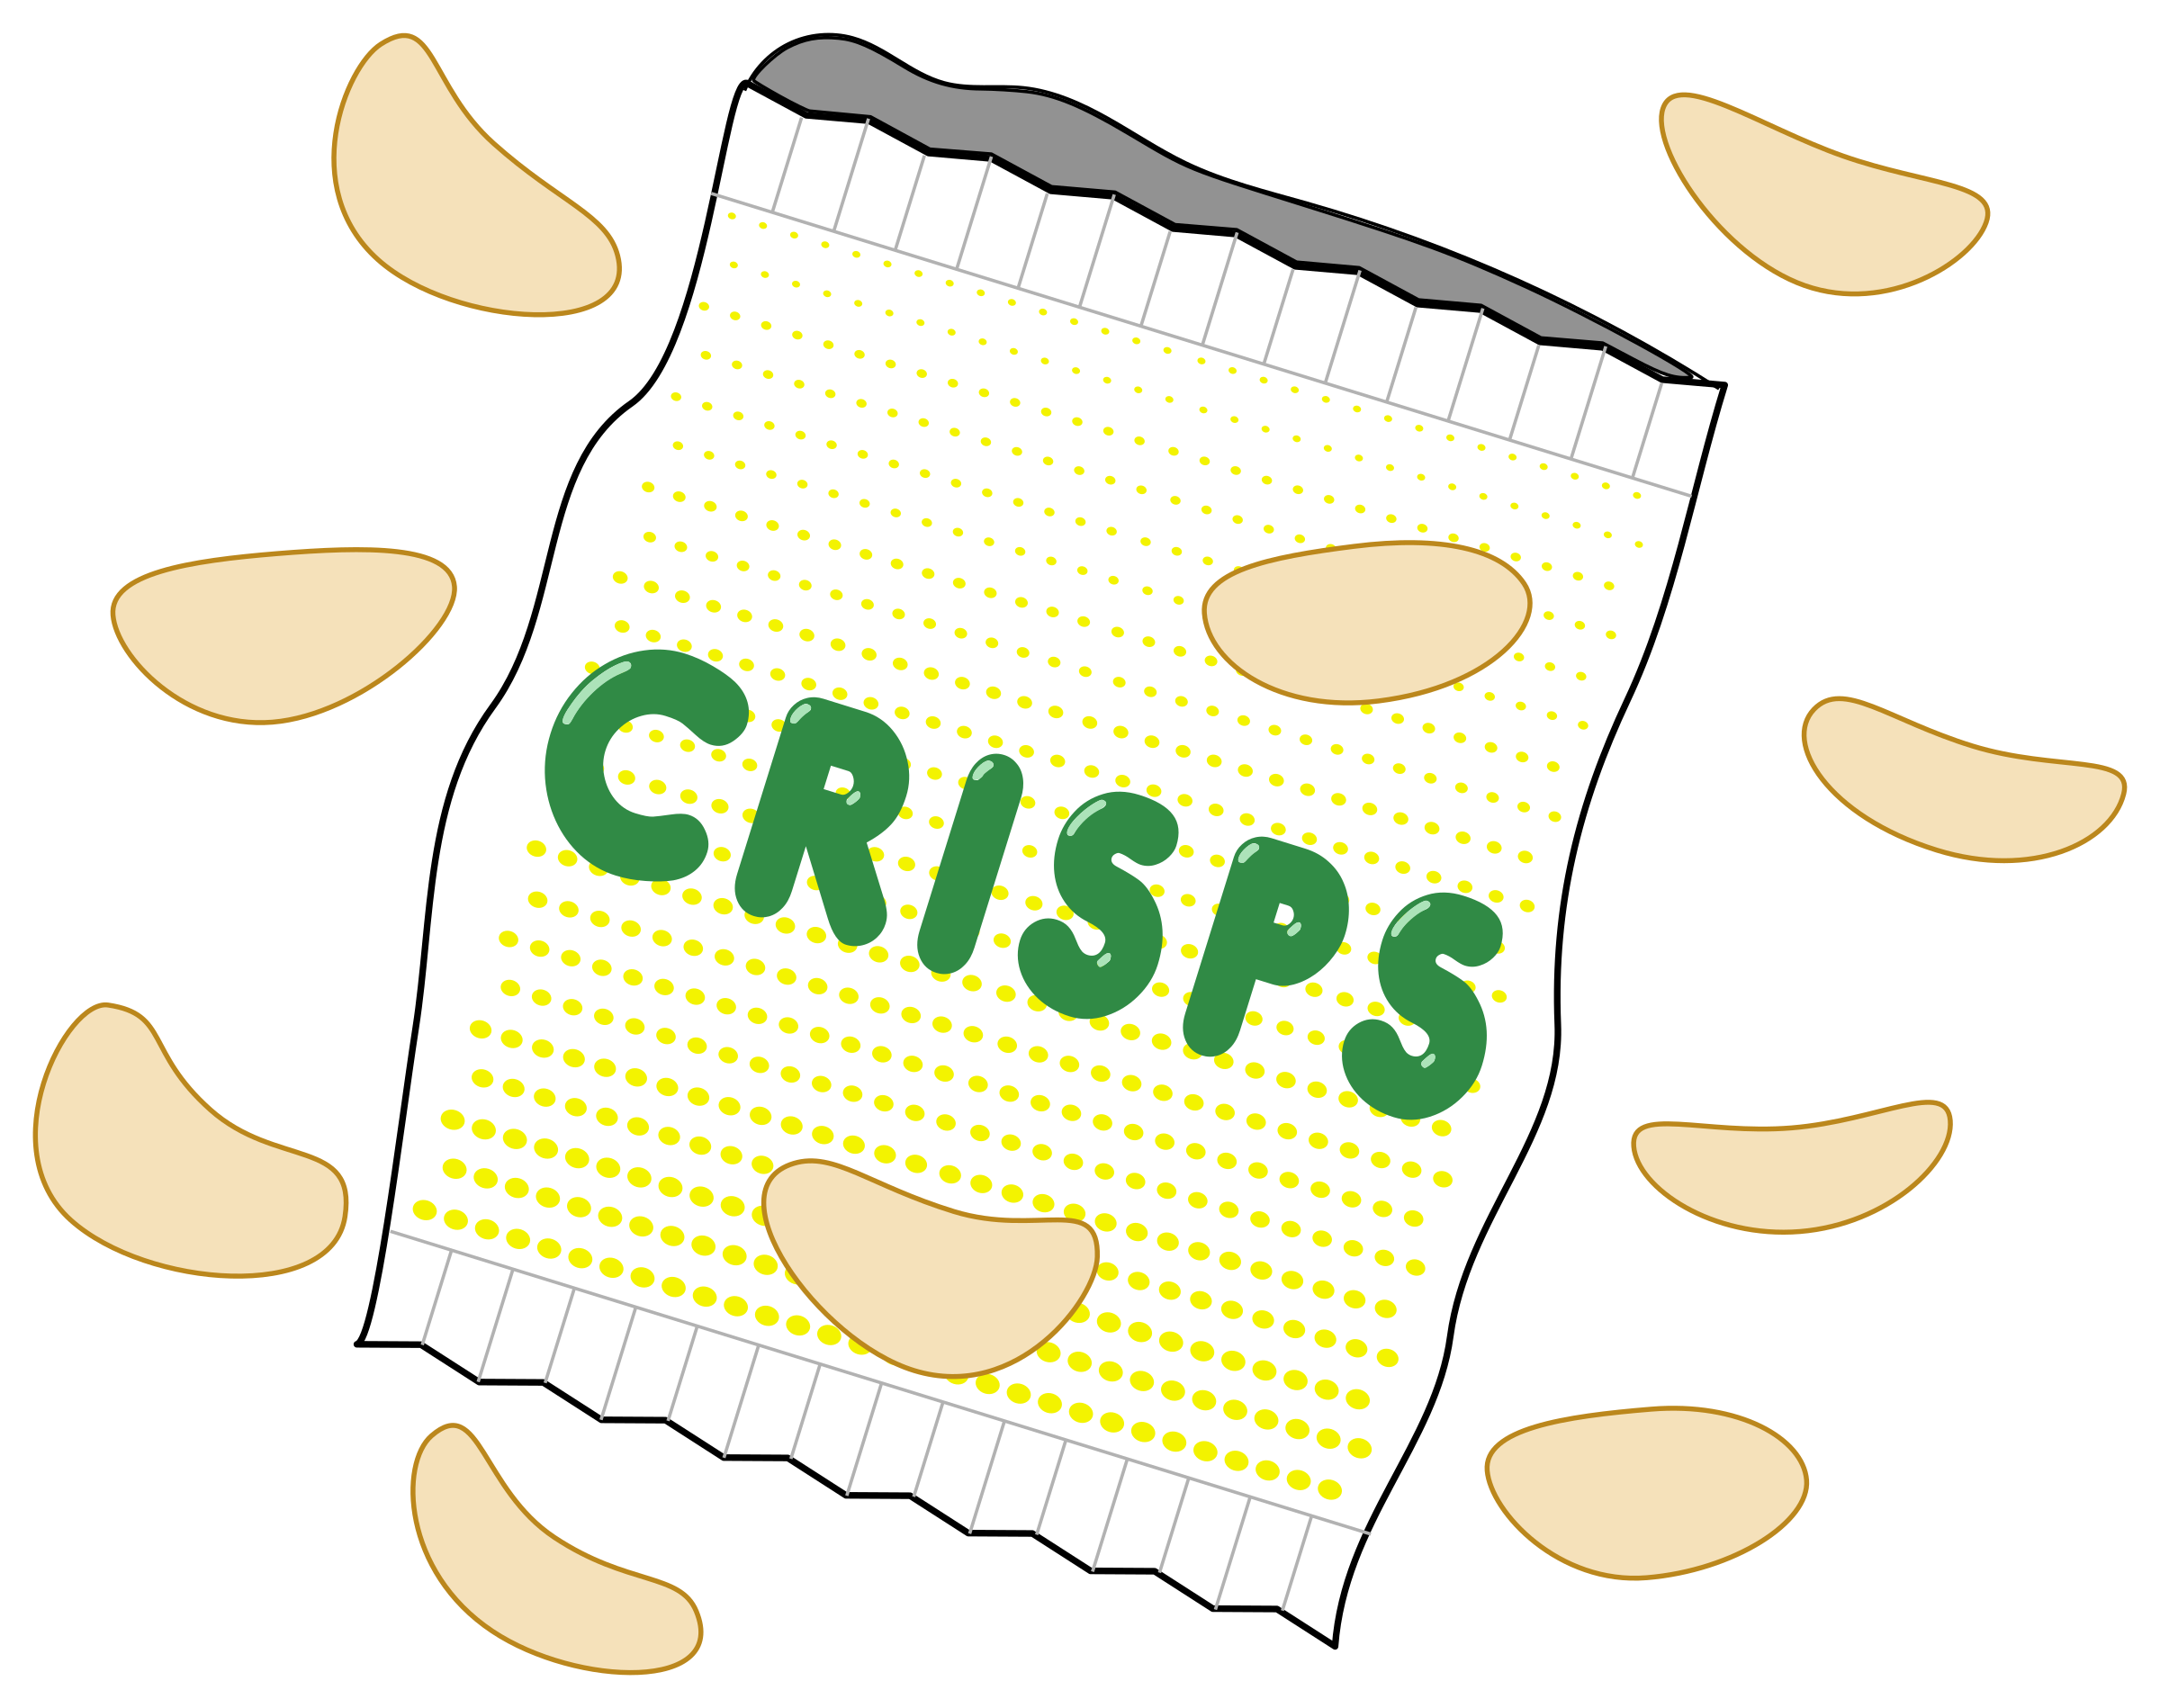 Crisps by Arvin61r58